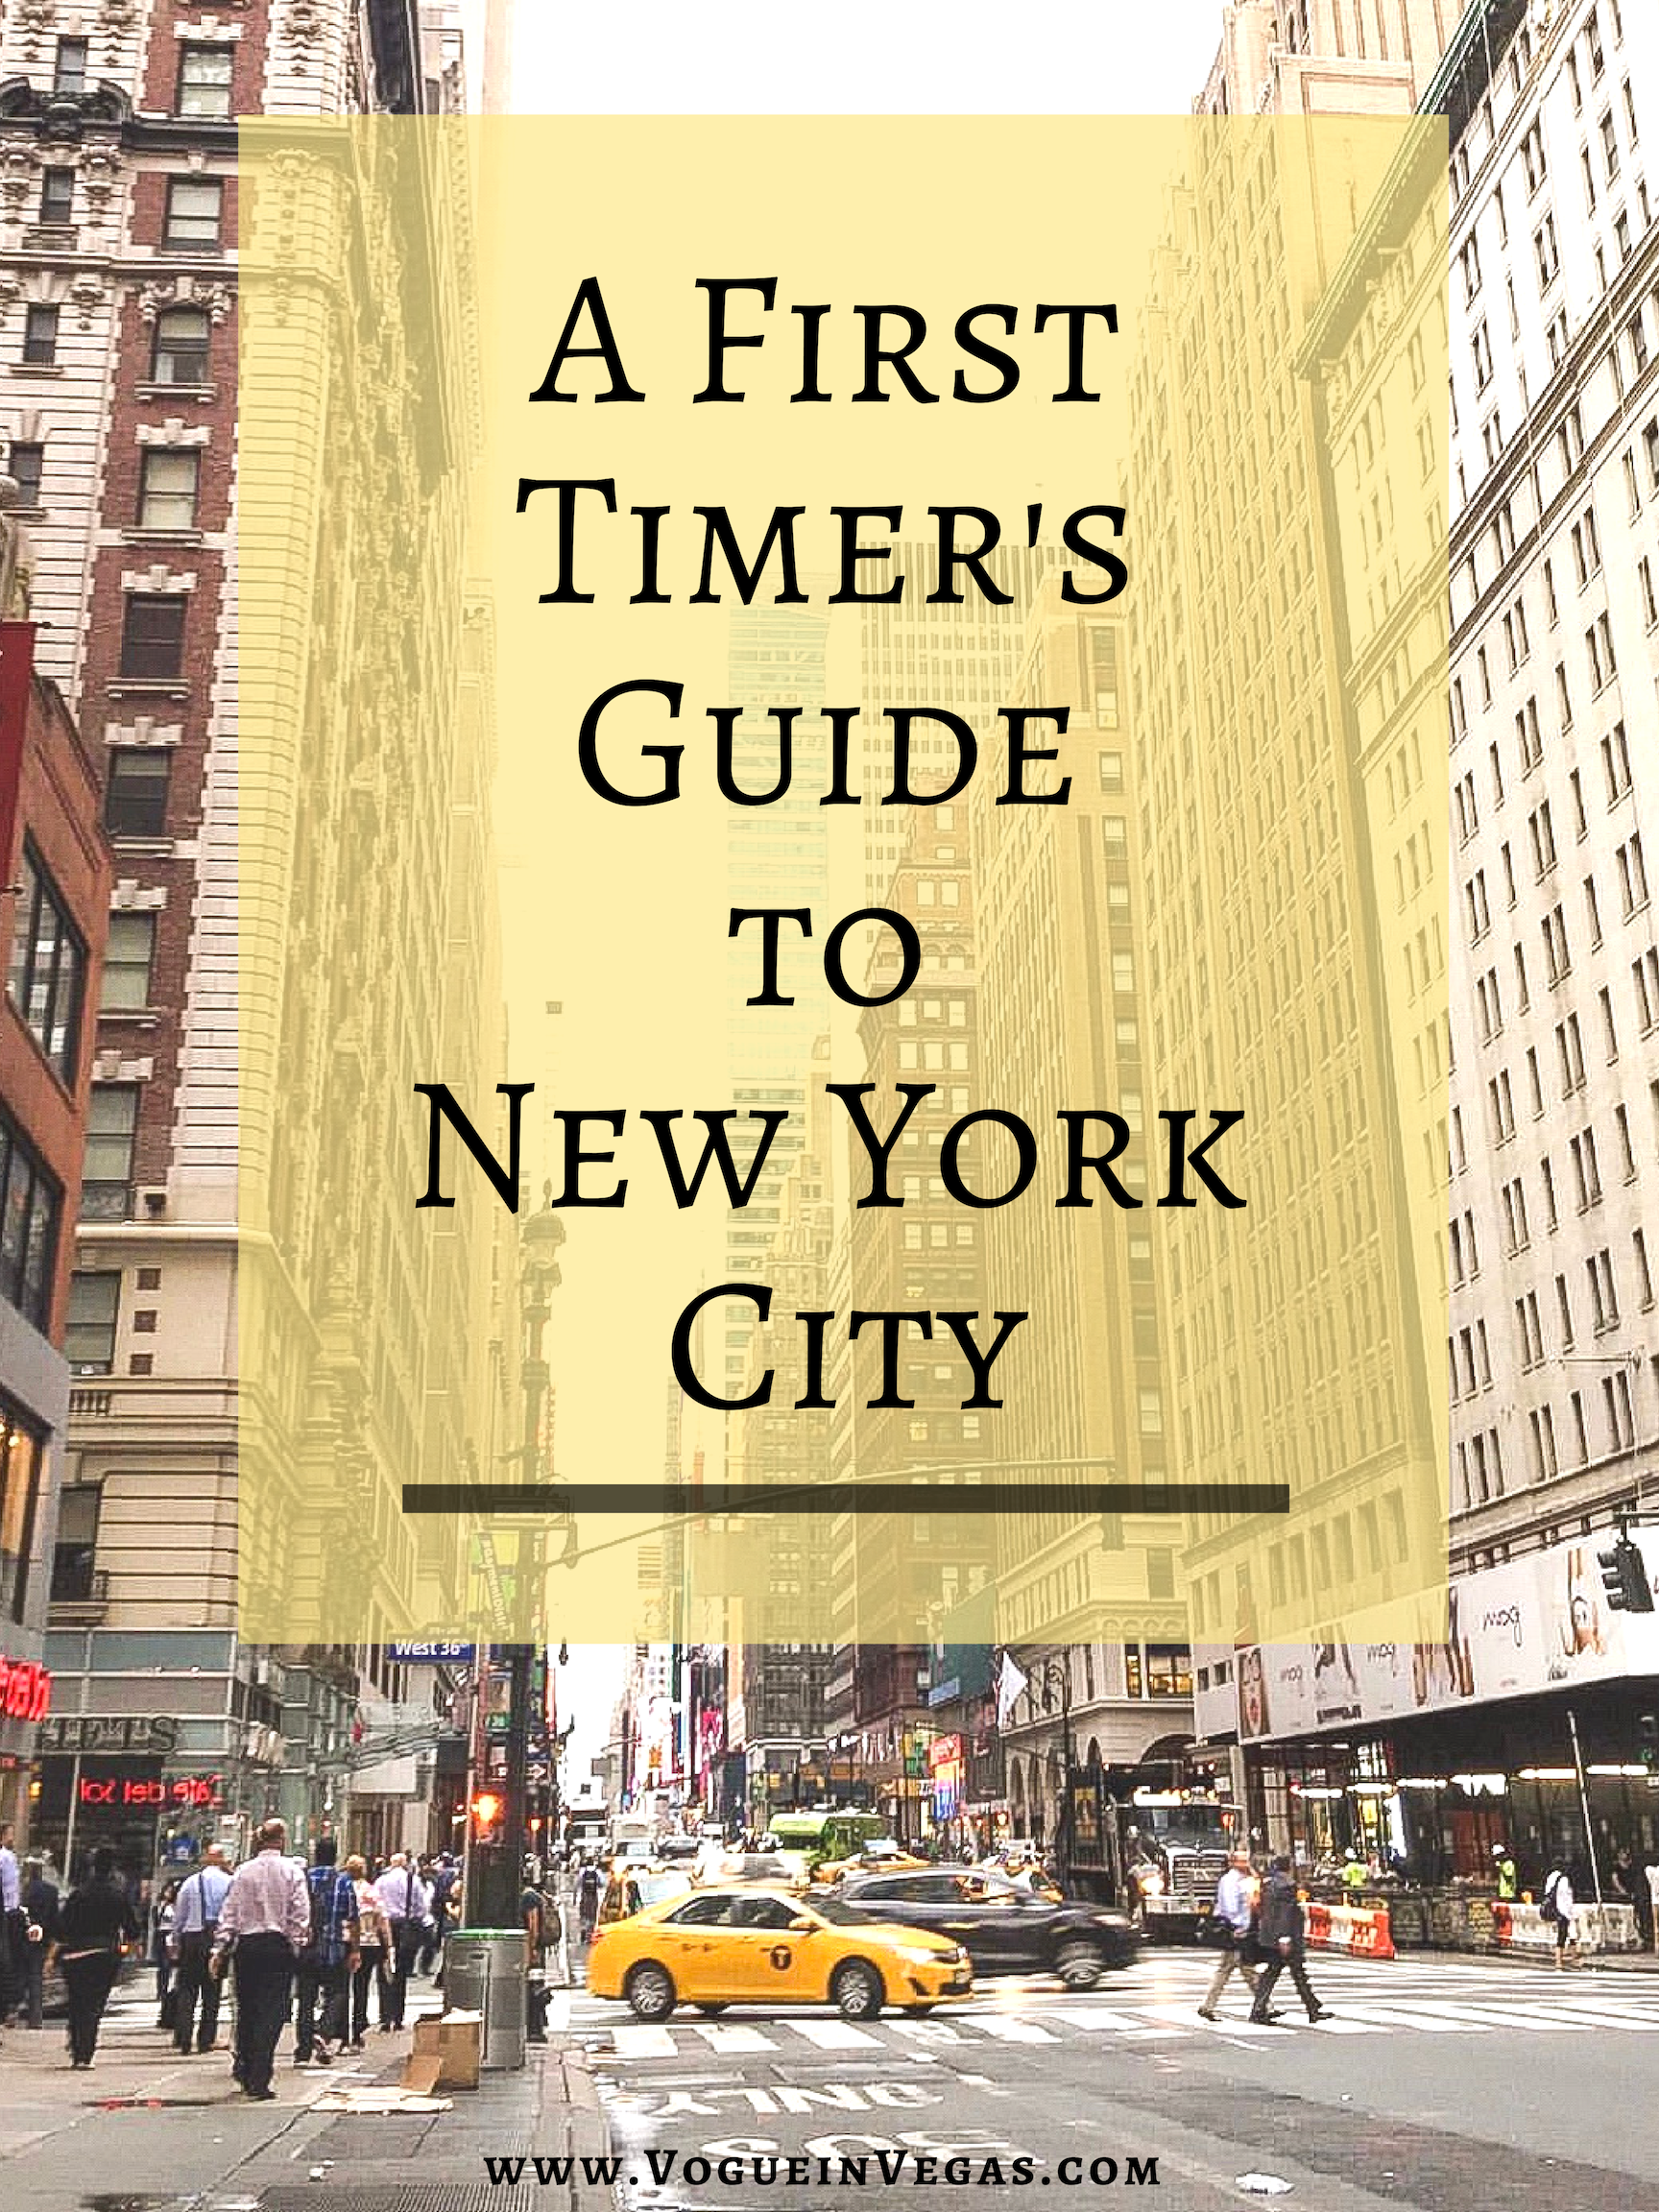 A First Timer's Guide to New York City-3.png